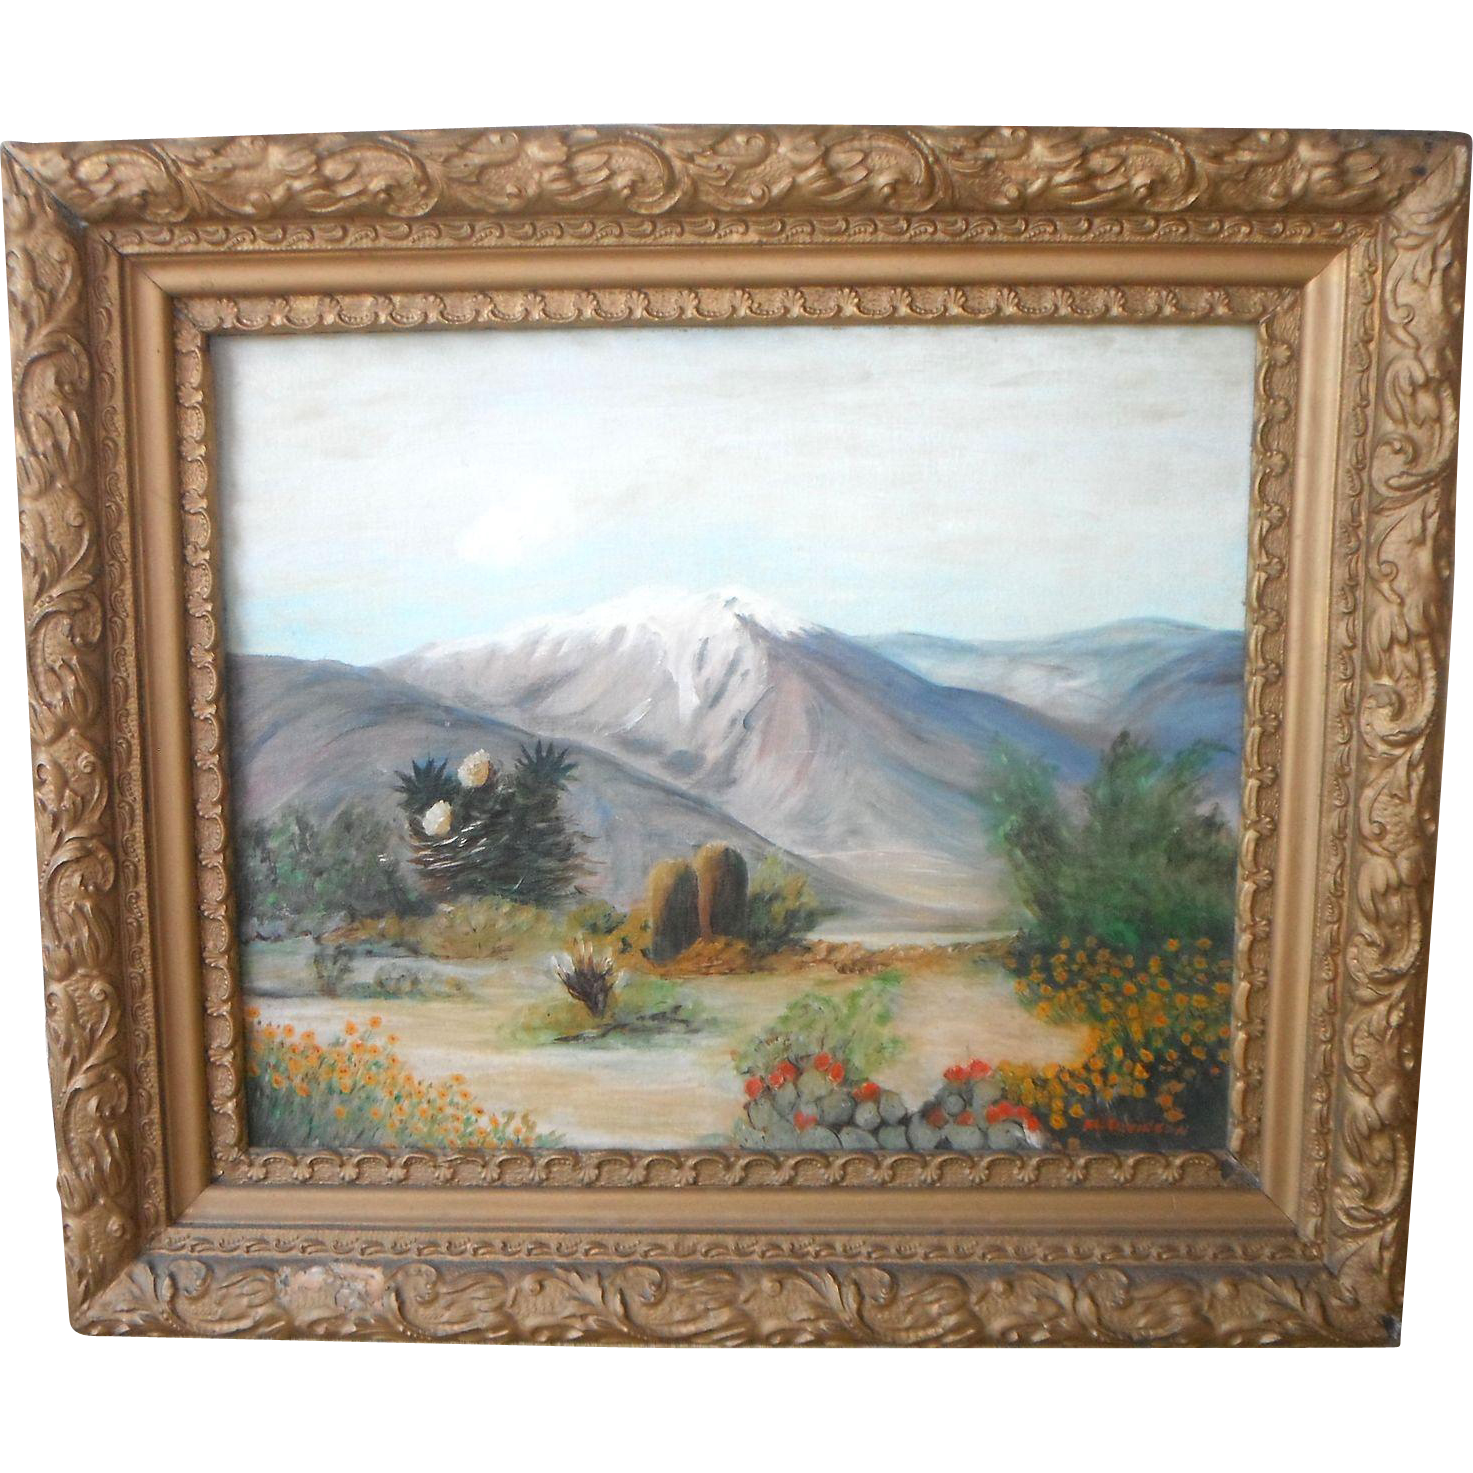 Southwestern Arizona~New Mexico Desert Mountain Landscape Original Oil Painting by M. Davidson